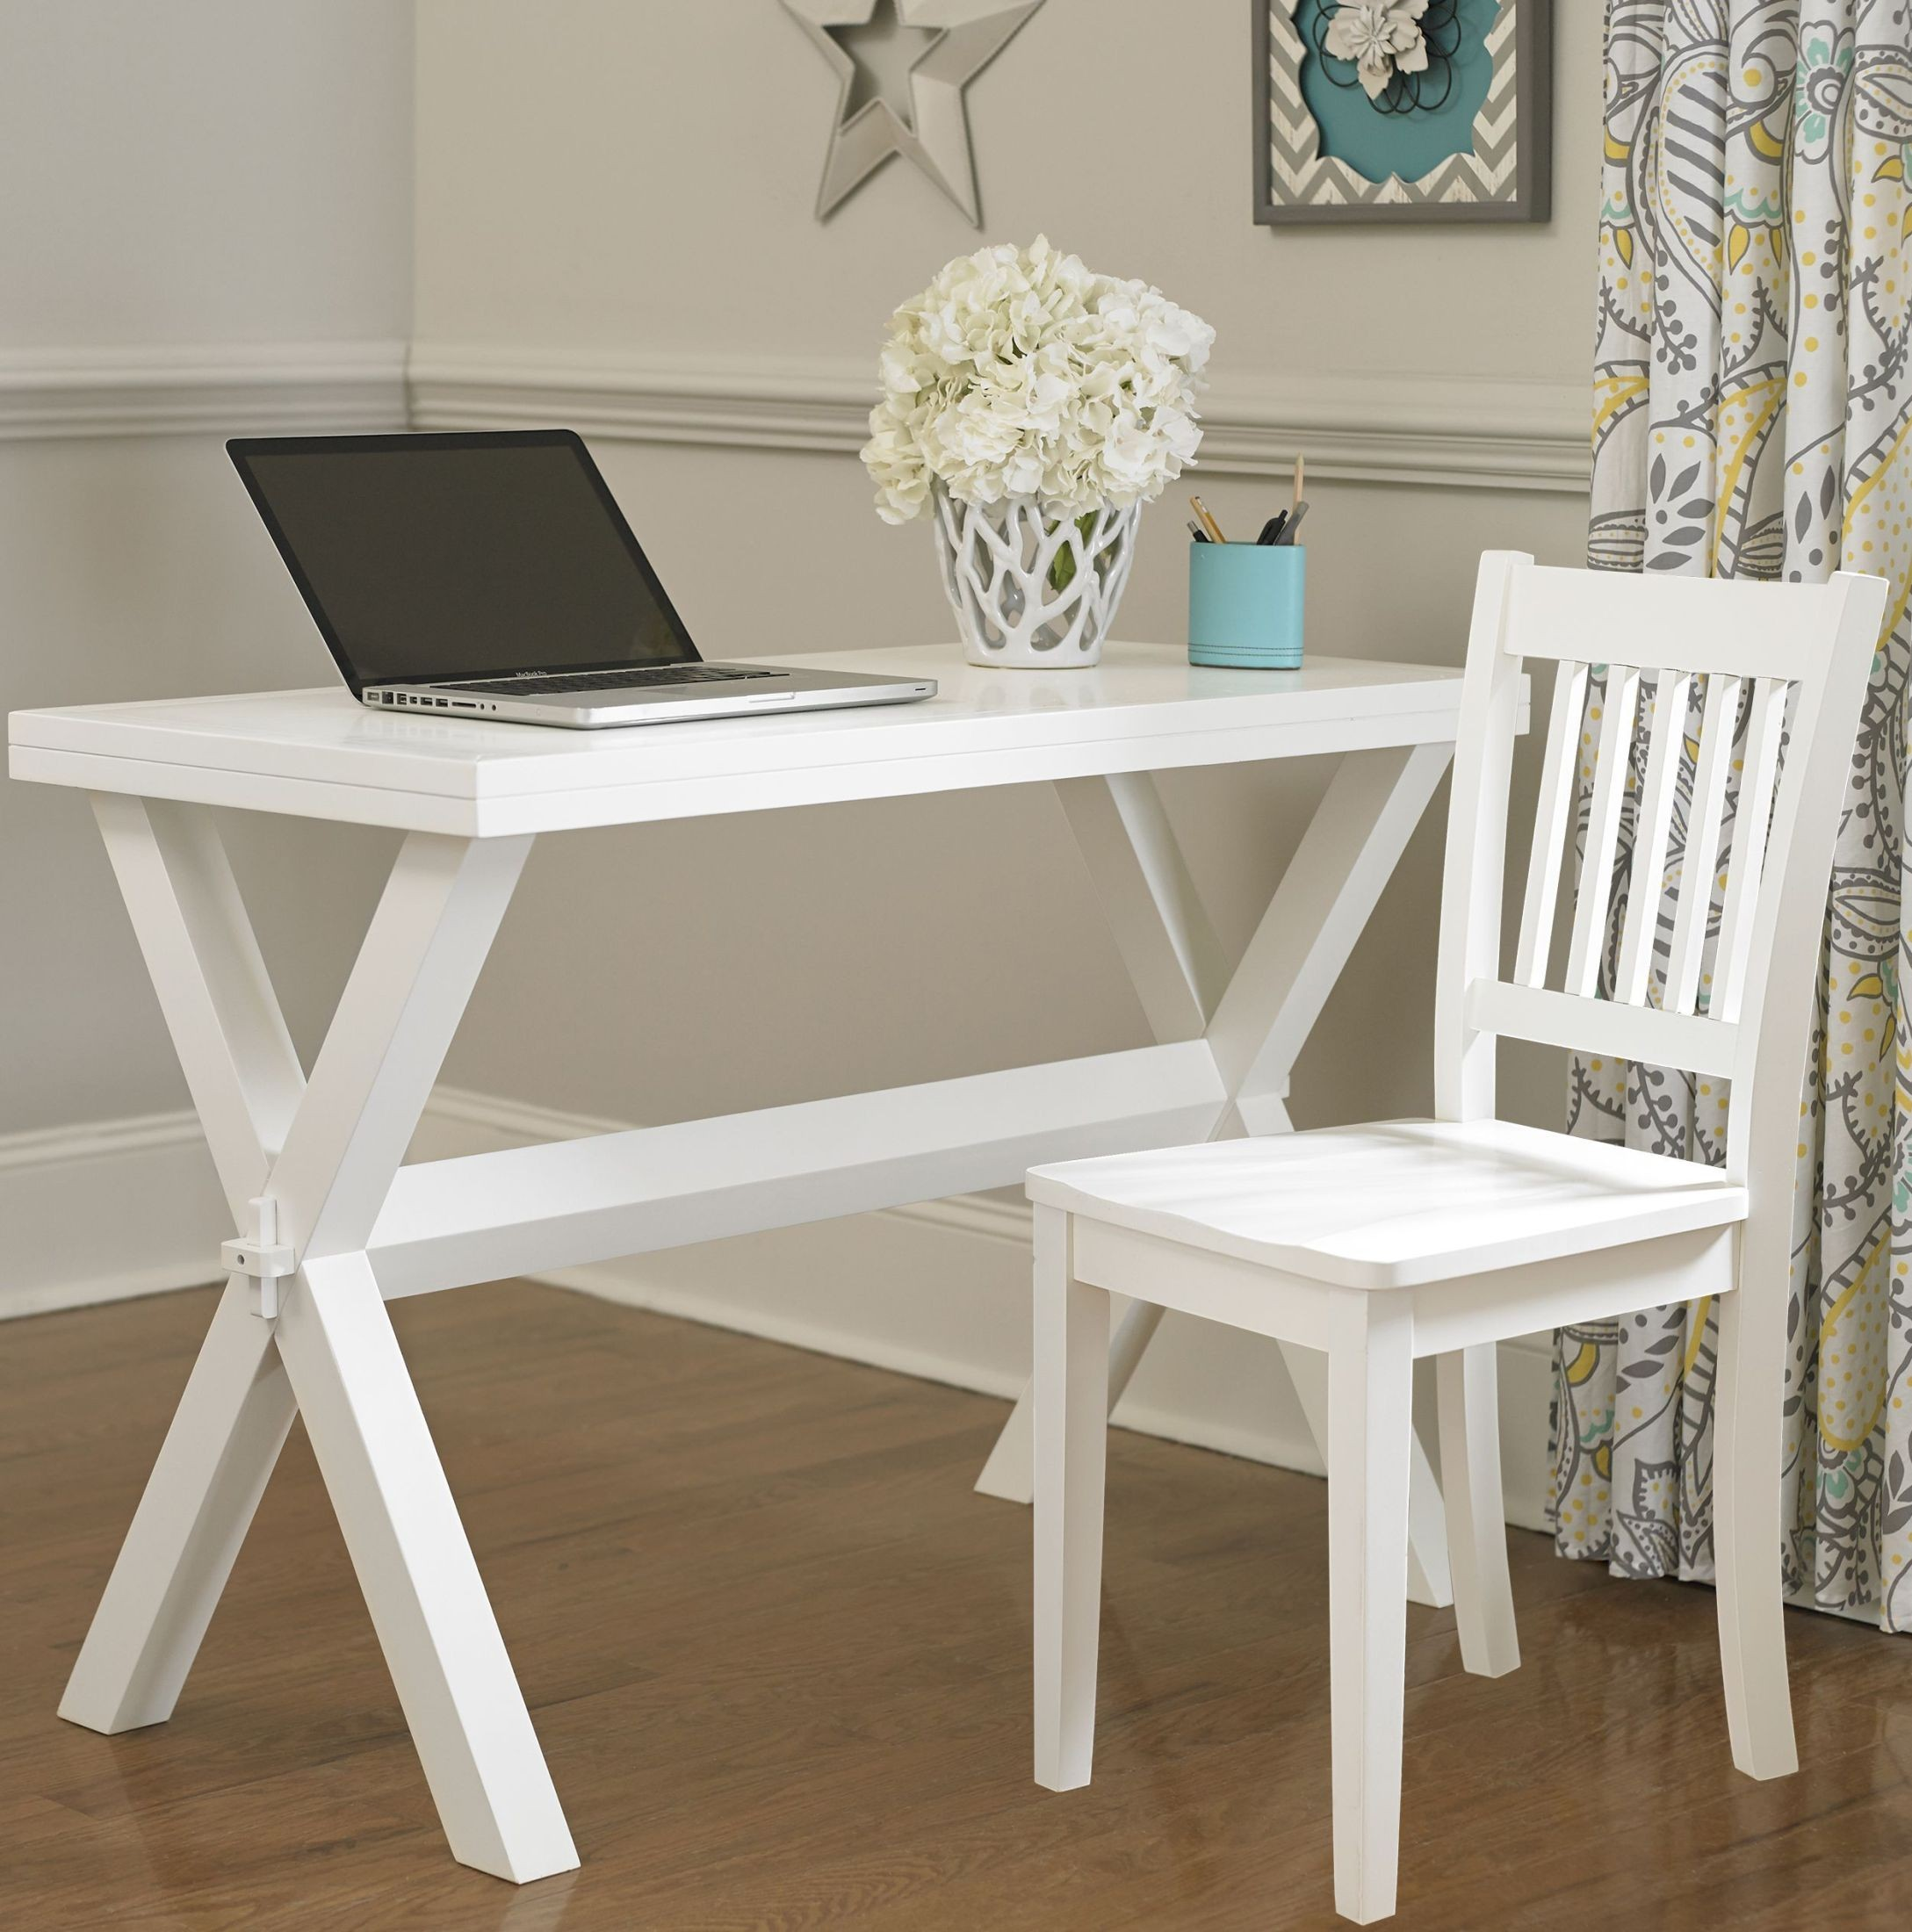 Pulse white desk and chair from ne kids coleman furniture for White childrens chair